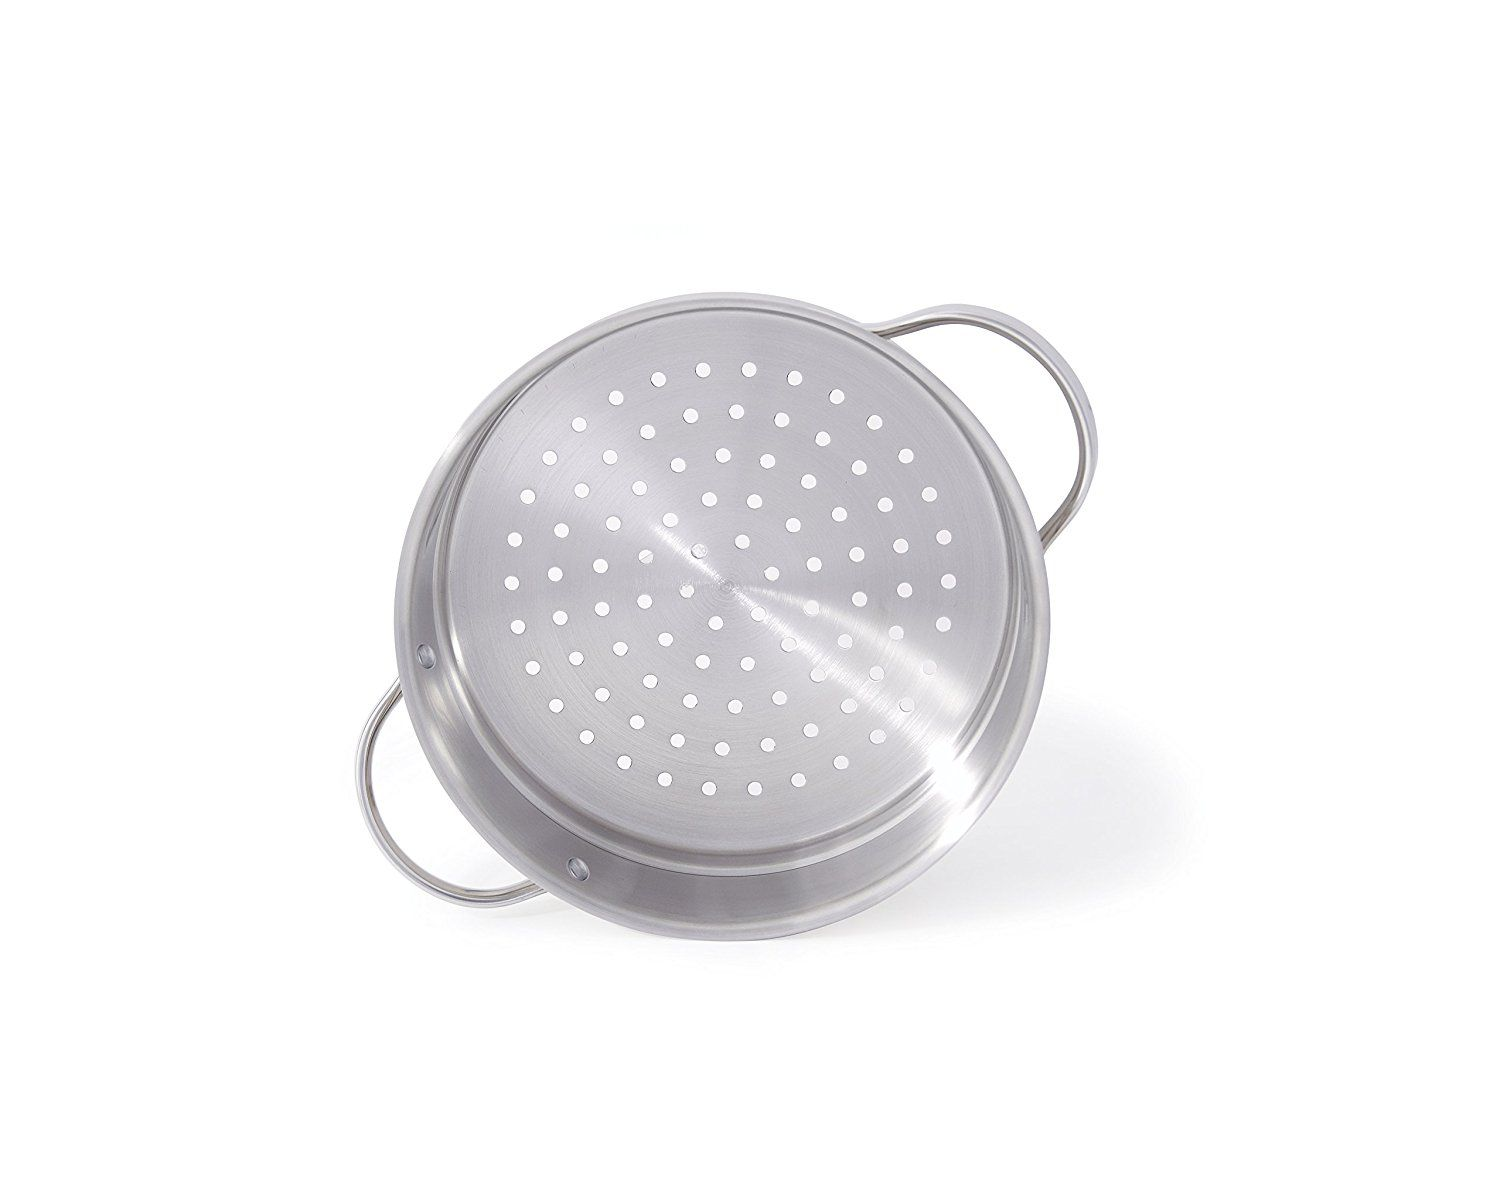 Cuisinox Pot De20st Deluxe Steamer Insert 20cm Remarkable Product Available Now Steamers Stock And Pasta Pots Pasta Pot Steamer Pots And Pans